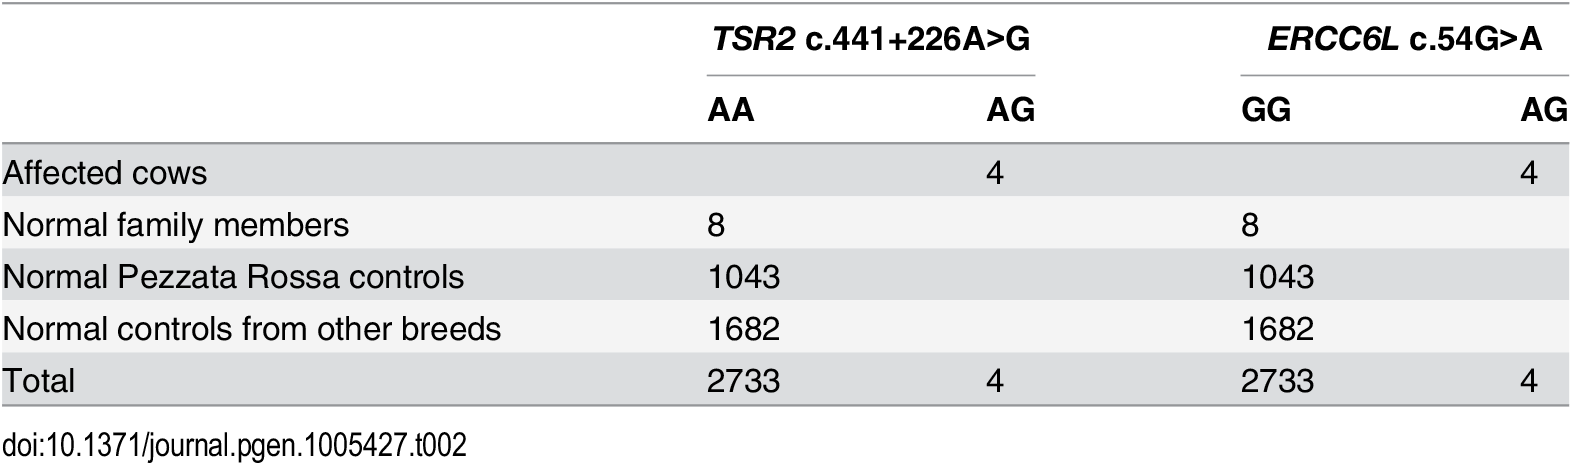 Association of the <i>TSR2</i> and <i>ERCC6L</i> variants with the streaked hairlessness phenotype.